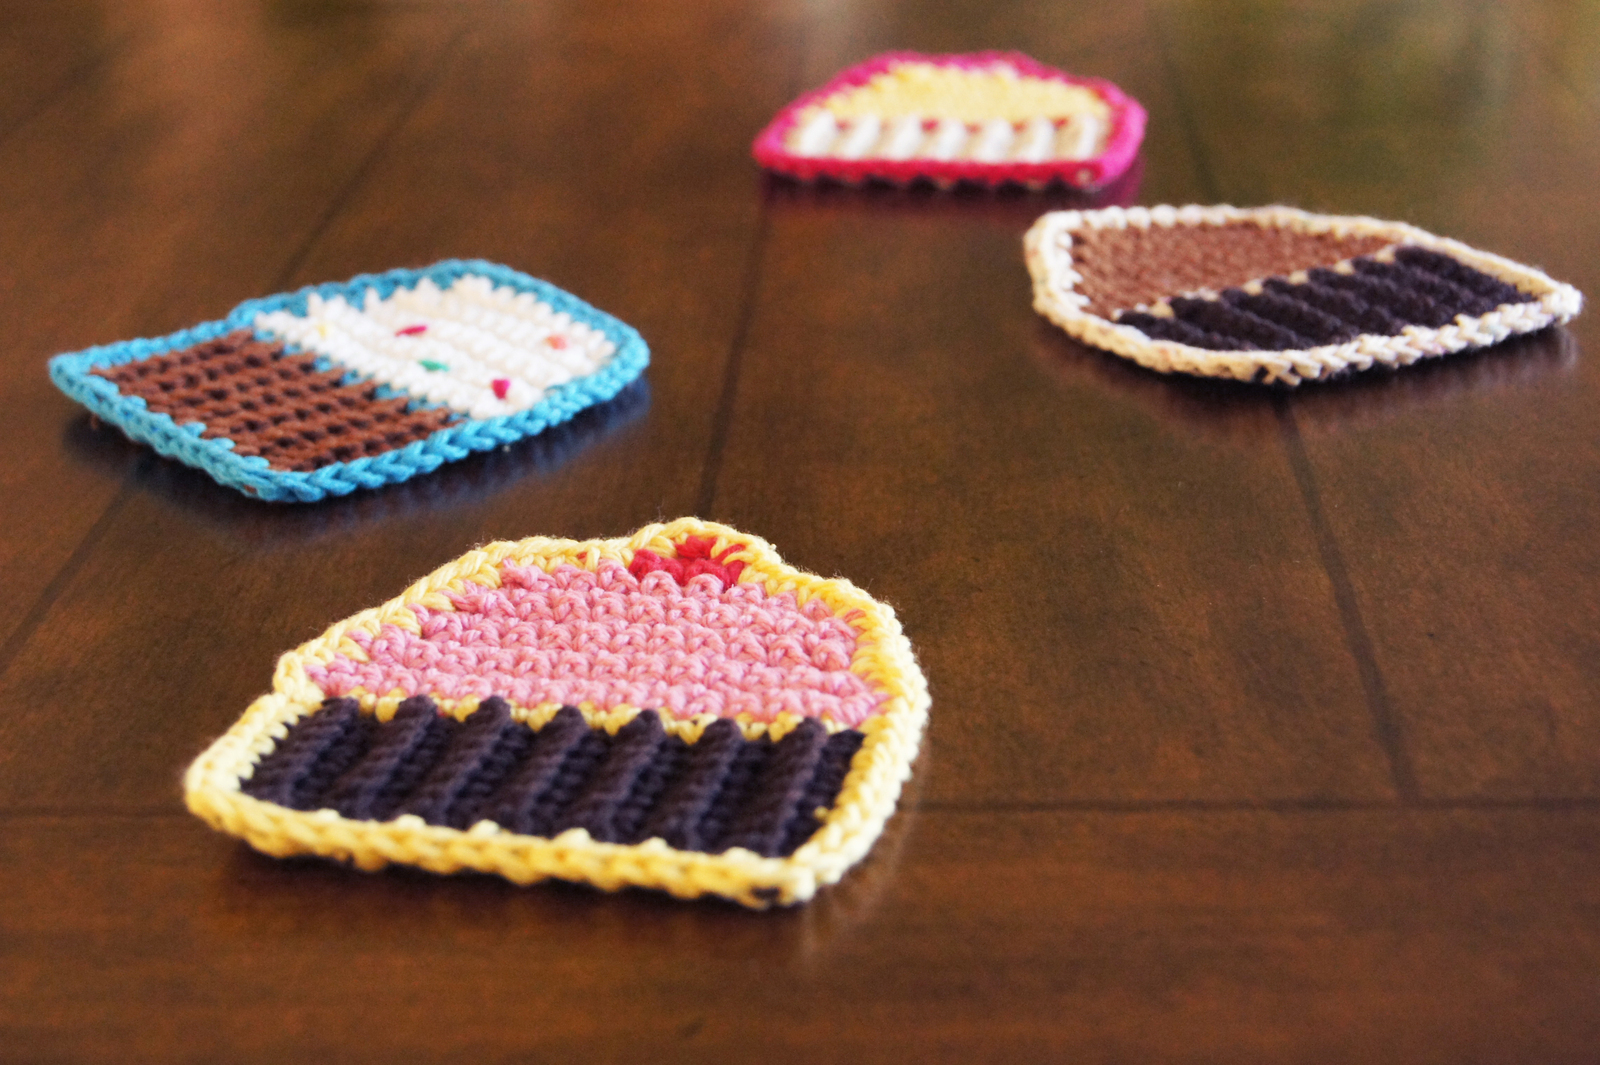 Crocheted Cupcake Coasters How To Stitch A Knit Or Crochet Coaster